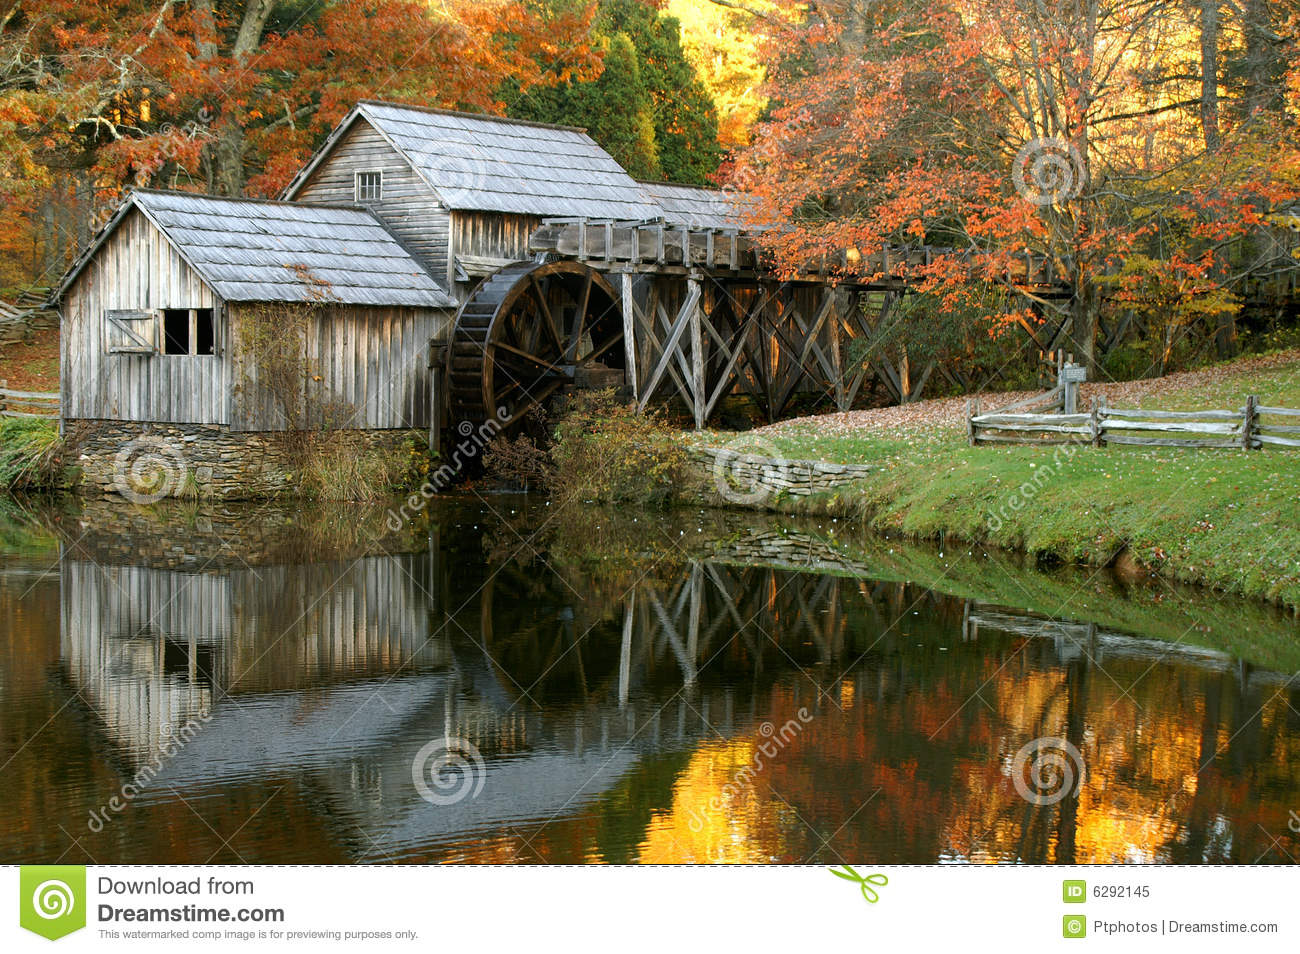 House Plans Log Cabin Mabry Mill Blue Ridge Parkway Virginia In Autumn Stock